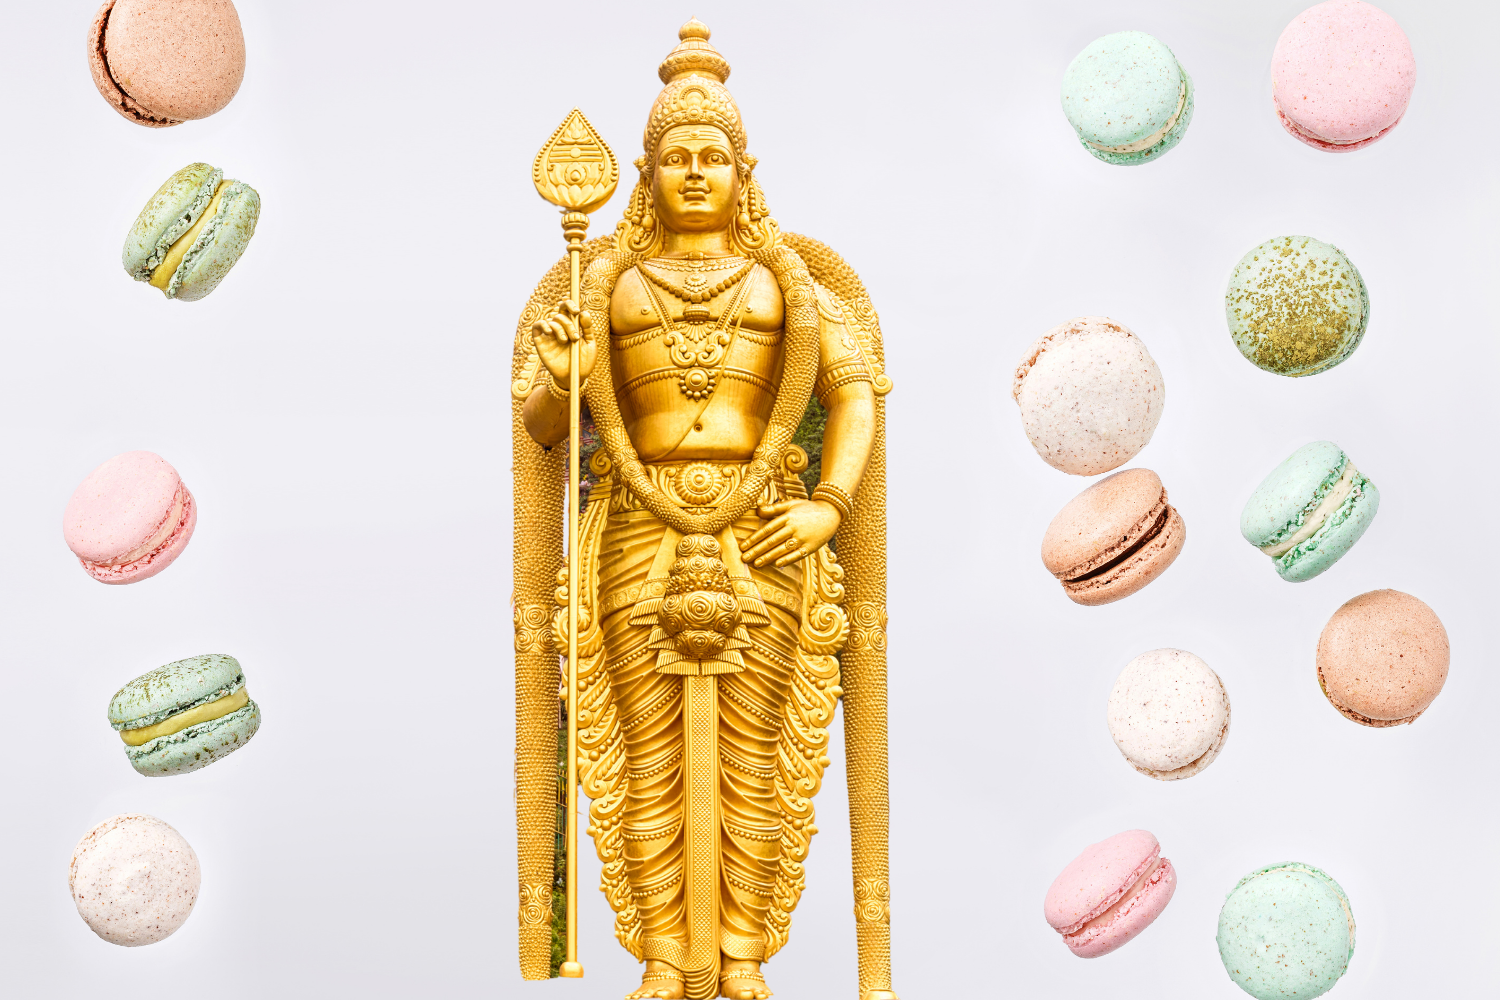 Golden statue surrounded by macarons